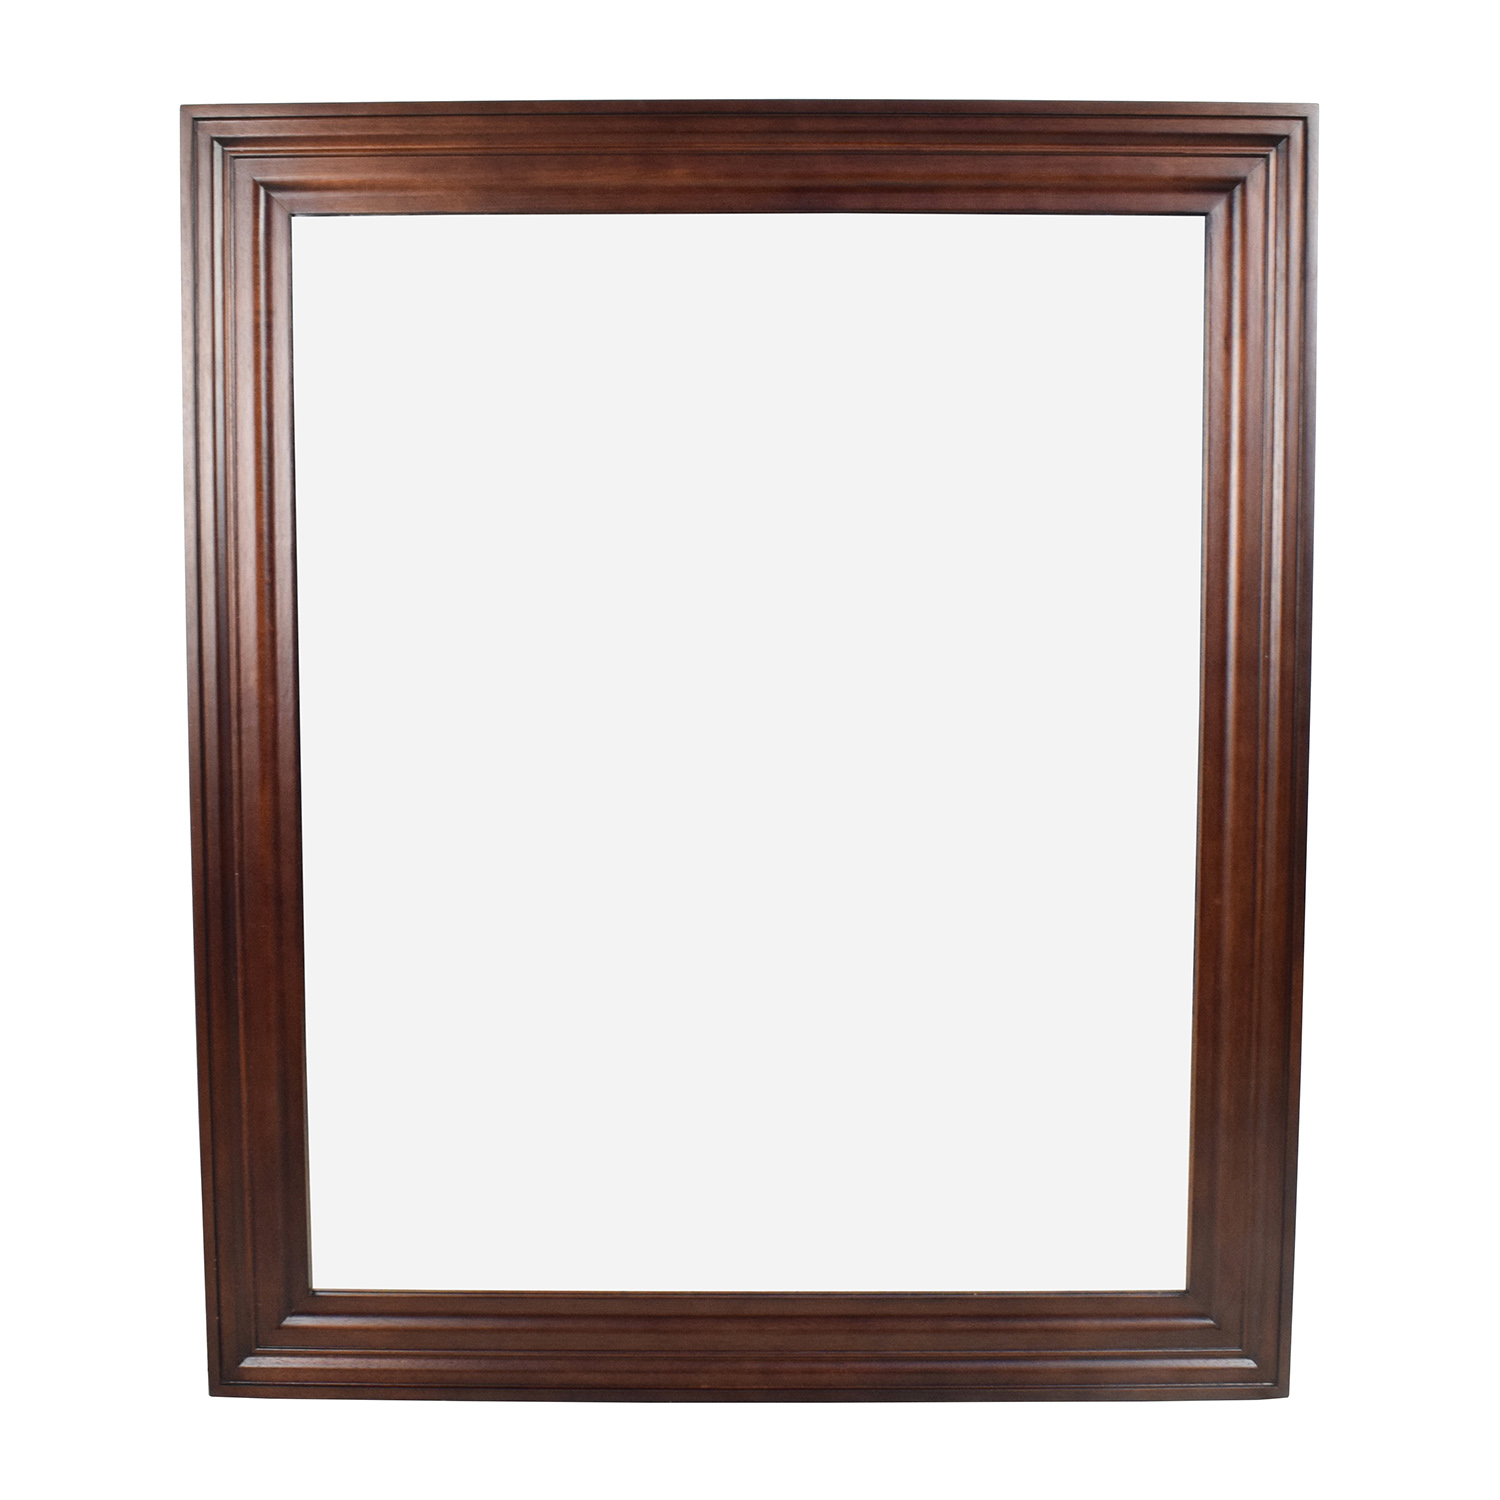 Large Wood Framed Mirror used